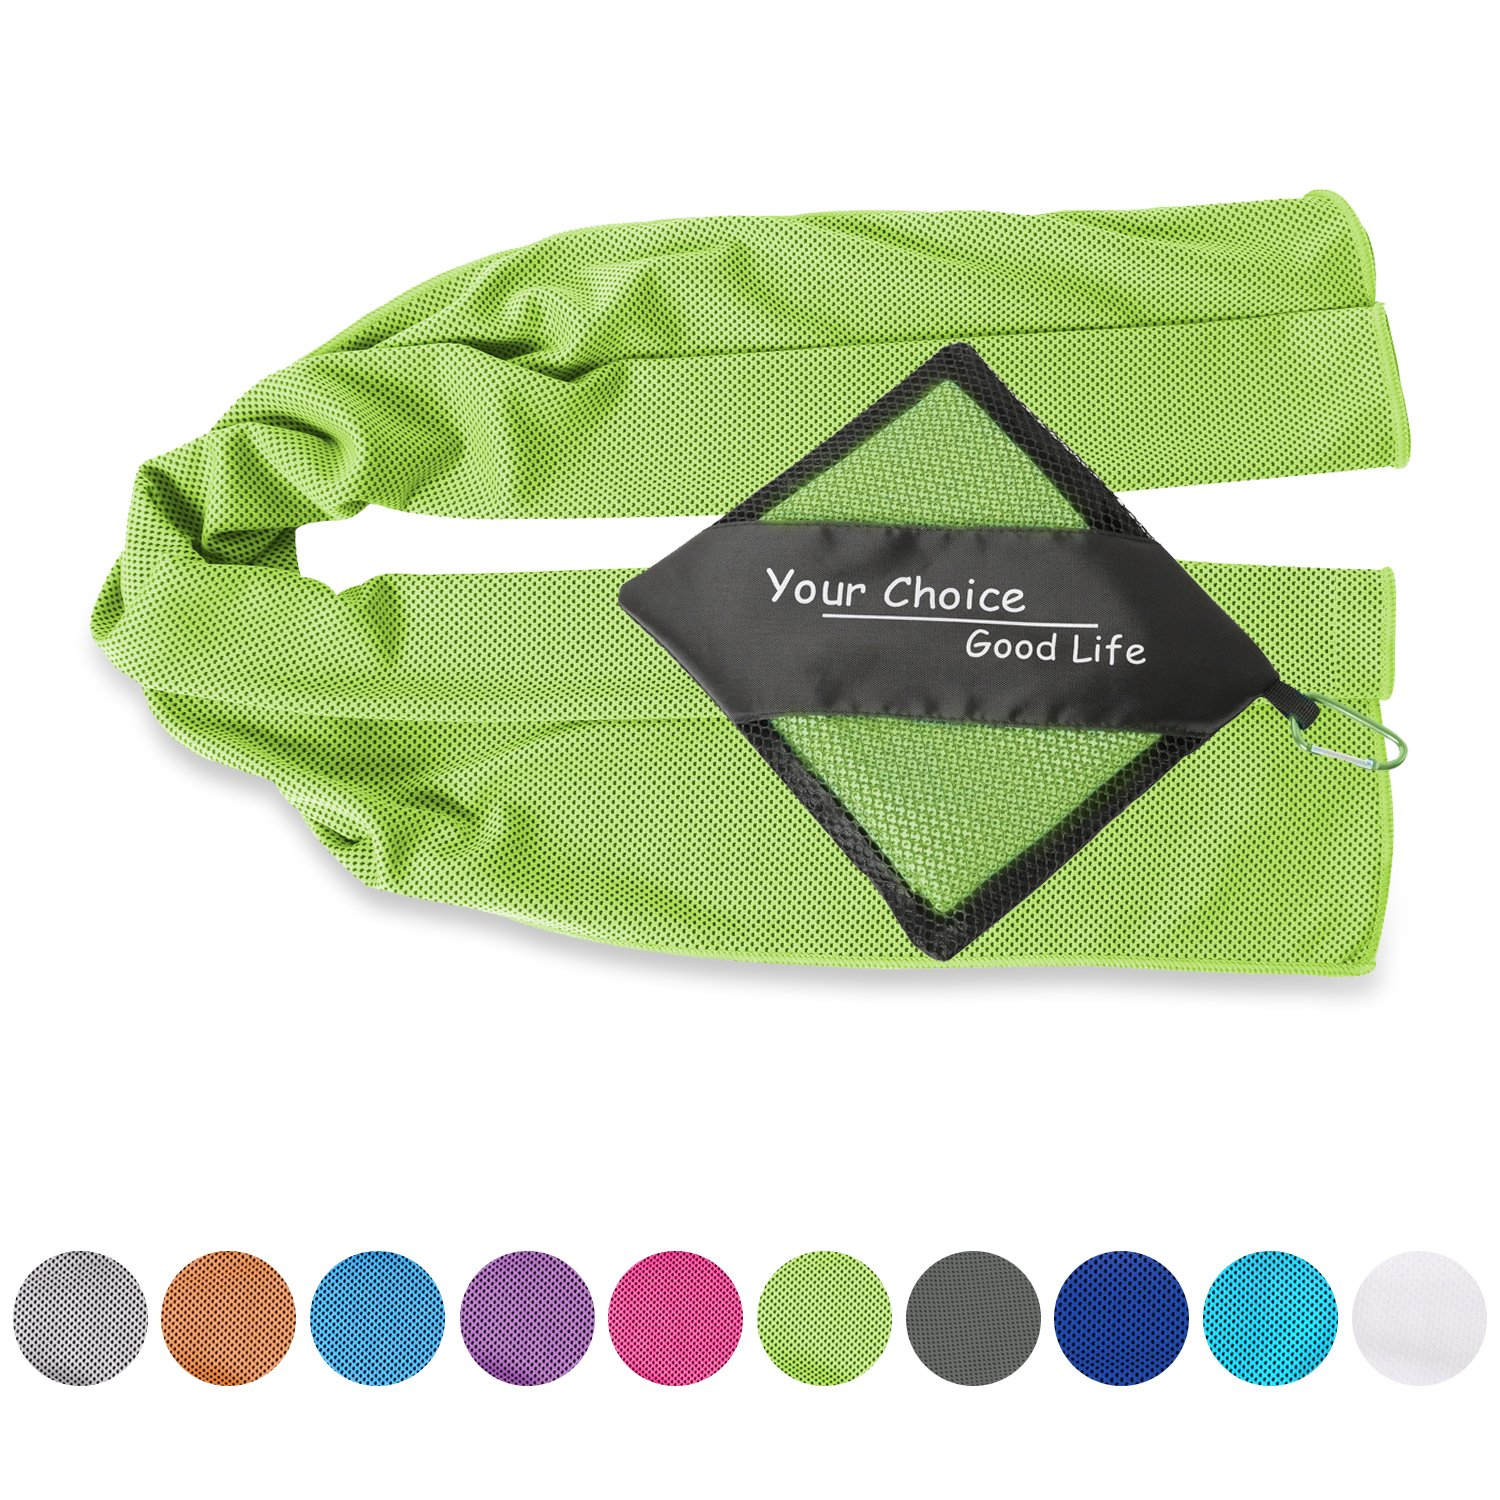 Your Choice Cooling Towel - Cooling Neck Wrap - Ice Towels Cold Snap Towel for Neck. Use as Cooling Neck Scarfs Bandanas for Gym Golf Sports in Hot Summer, Green 12x40 Inch